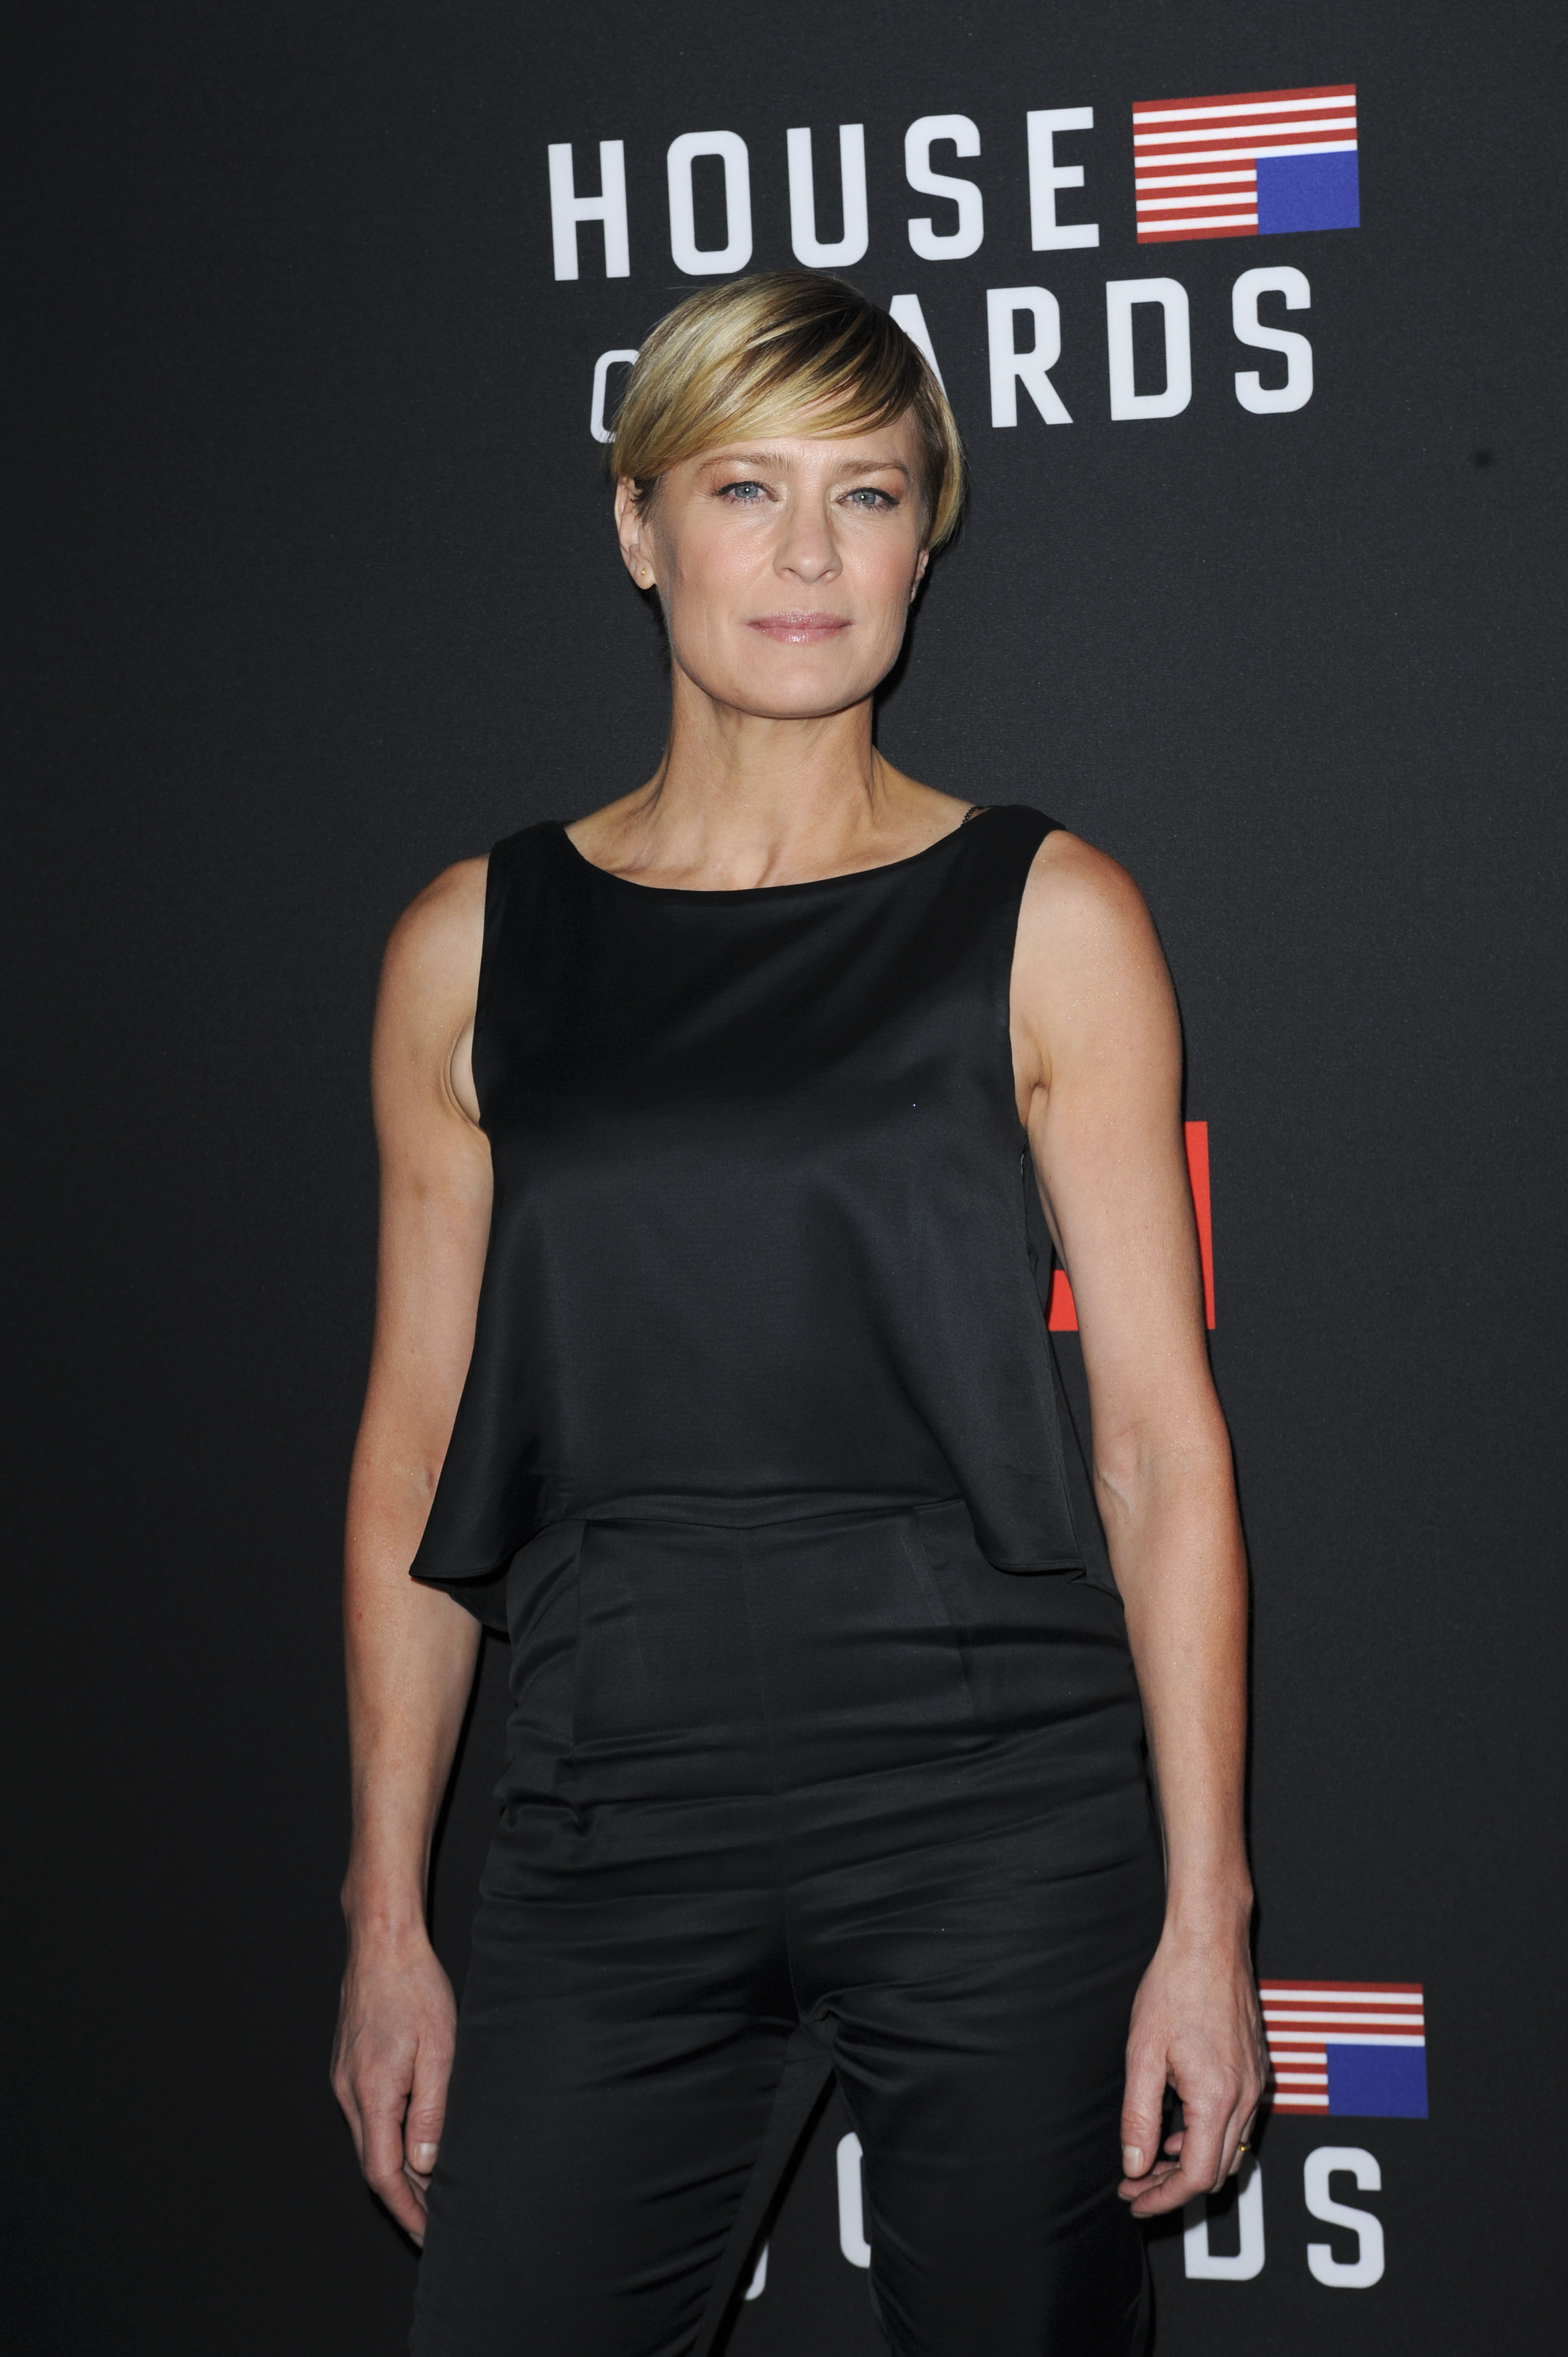 Film Premiere of House of Cards  Featuring: Robin Wright Where: Los Angeles, California, United States When: 14 Feb 2014 Credit: Apega/WENN.com